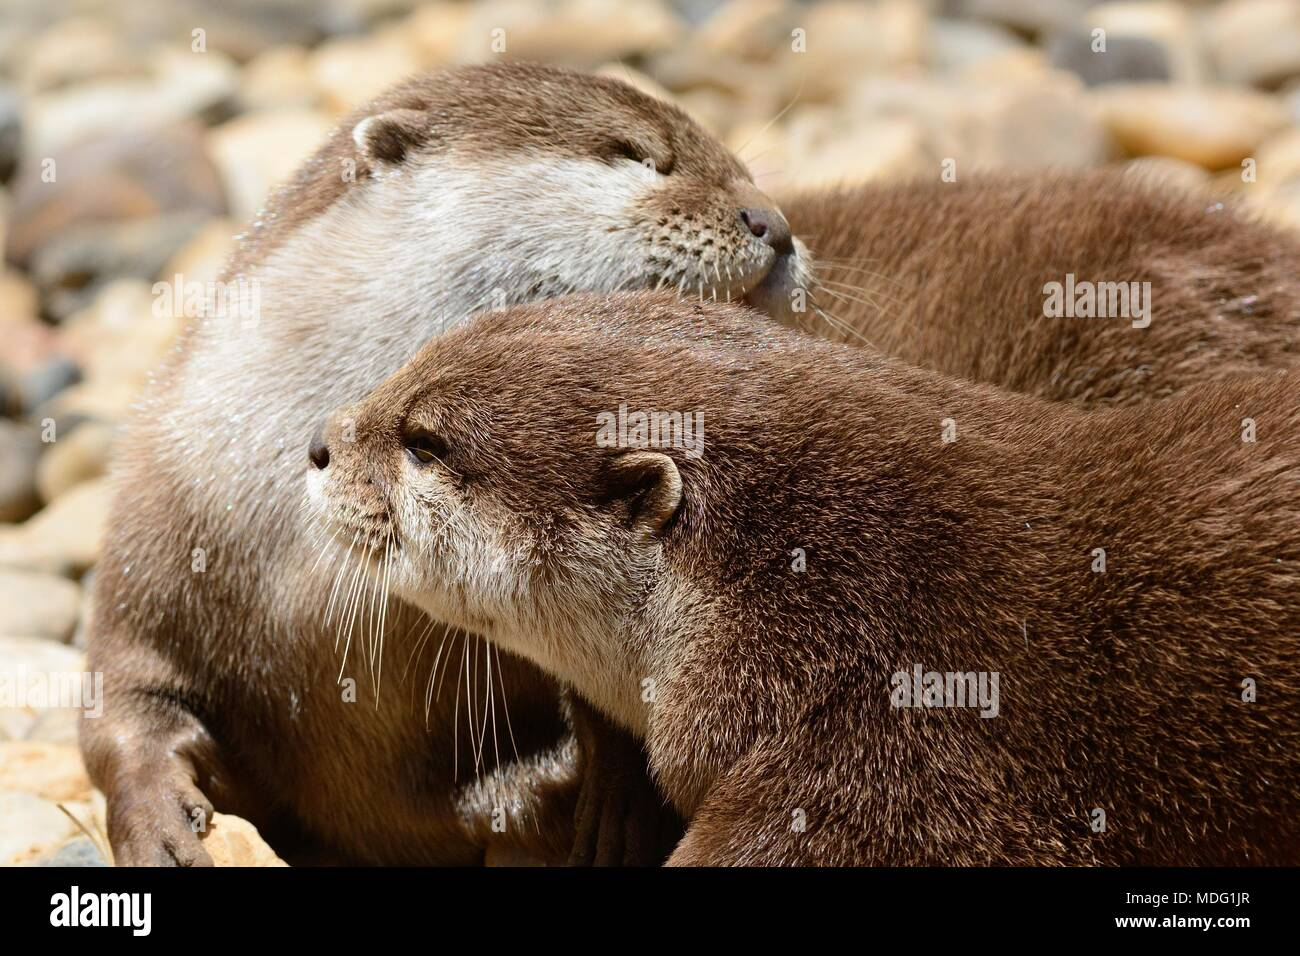 Portrait de deux otters de câlins Photo Stock